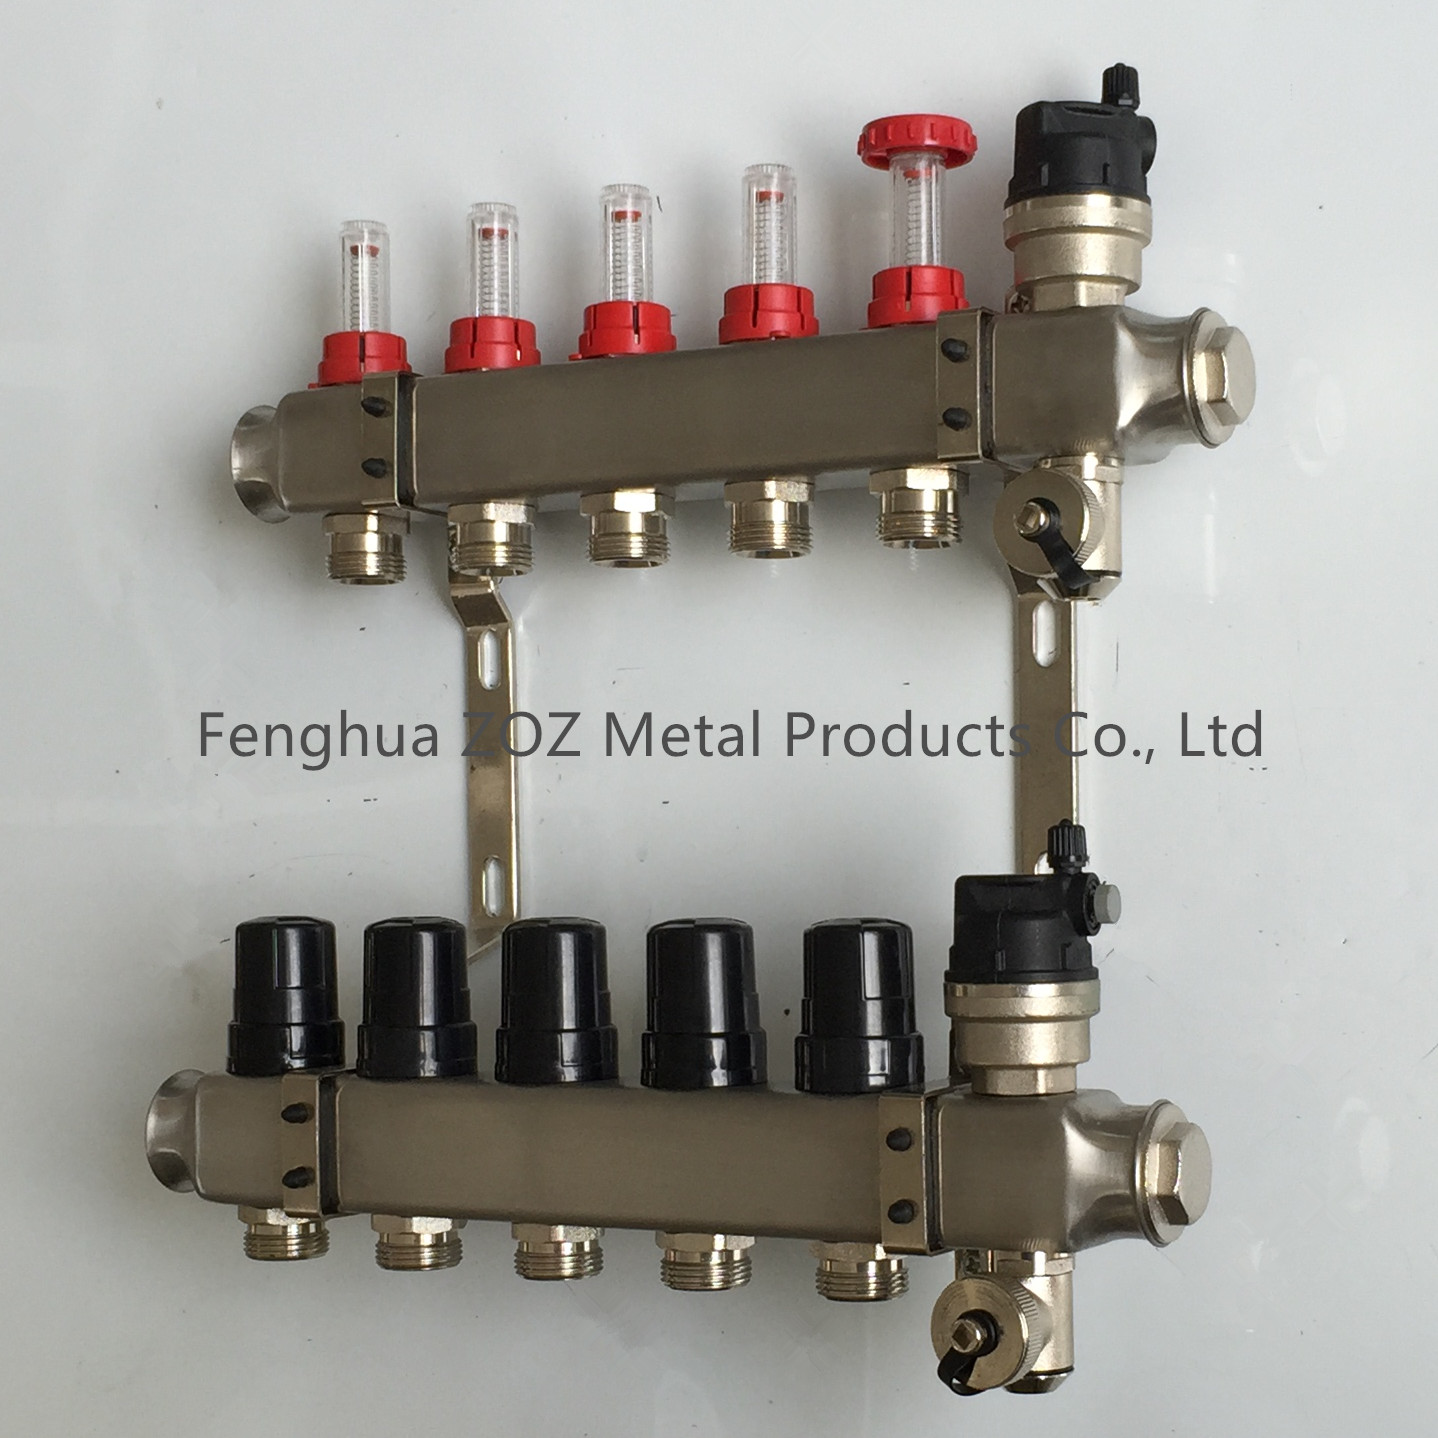 Stainless steel floor heating manifold